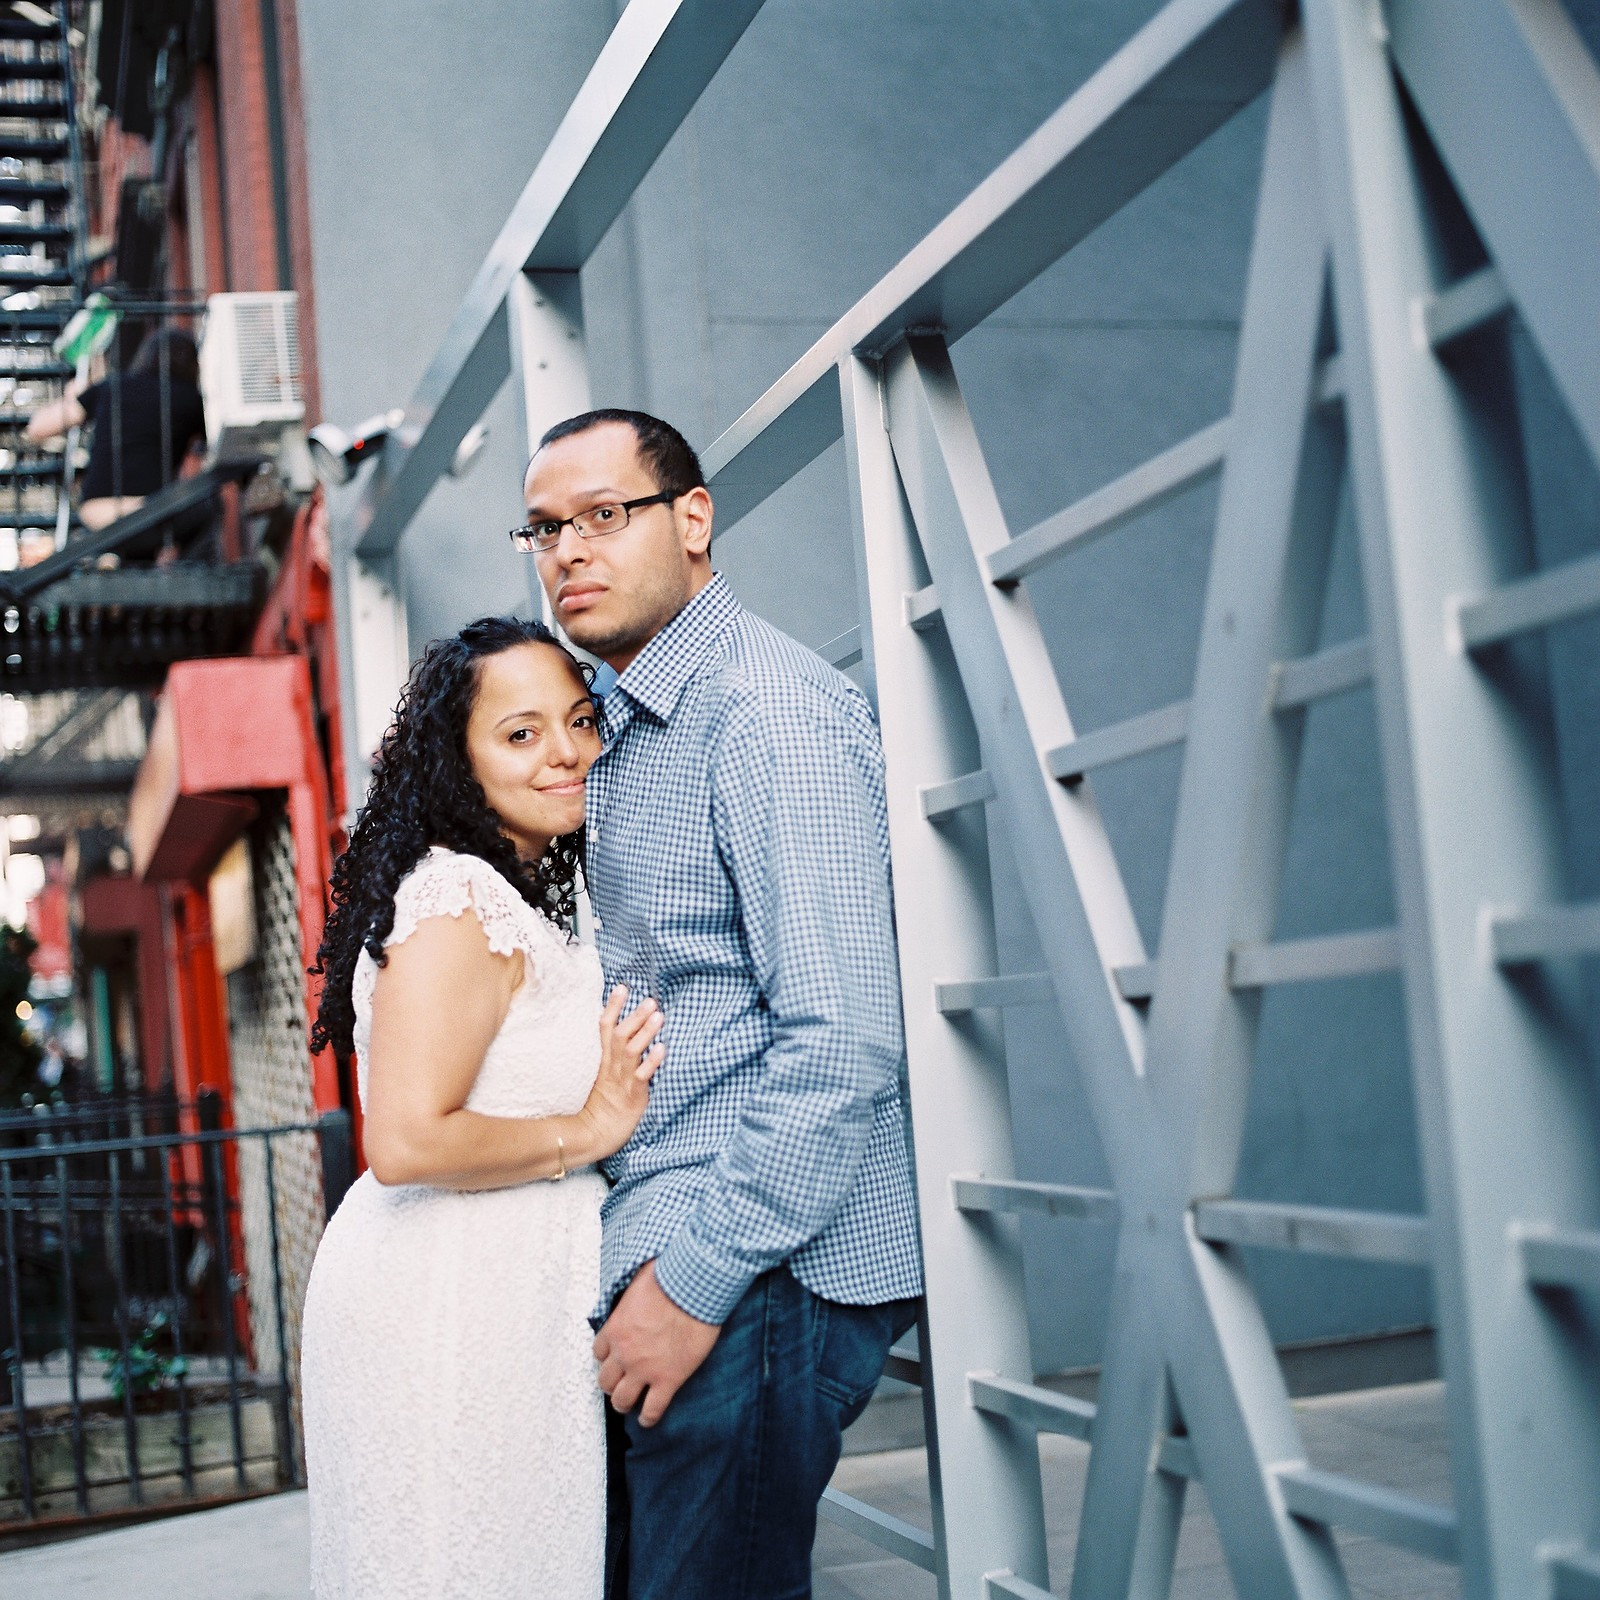 manhattan noho engagements by wendy g photography